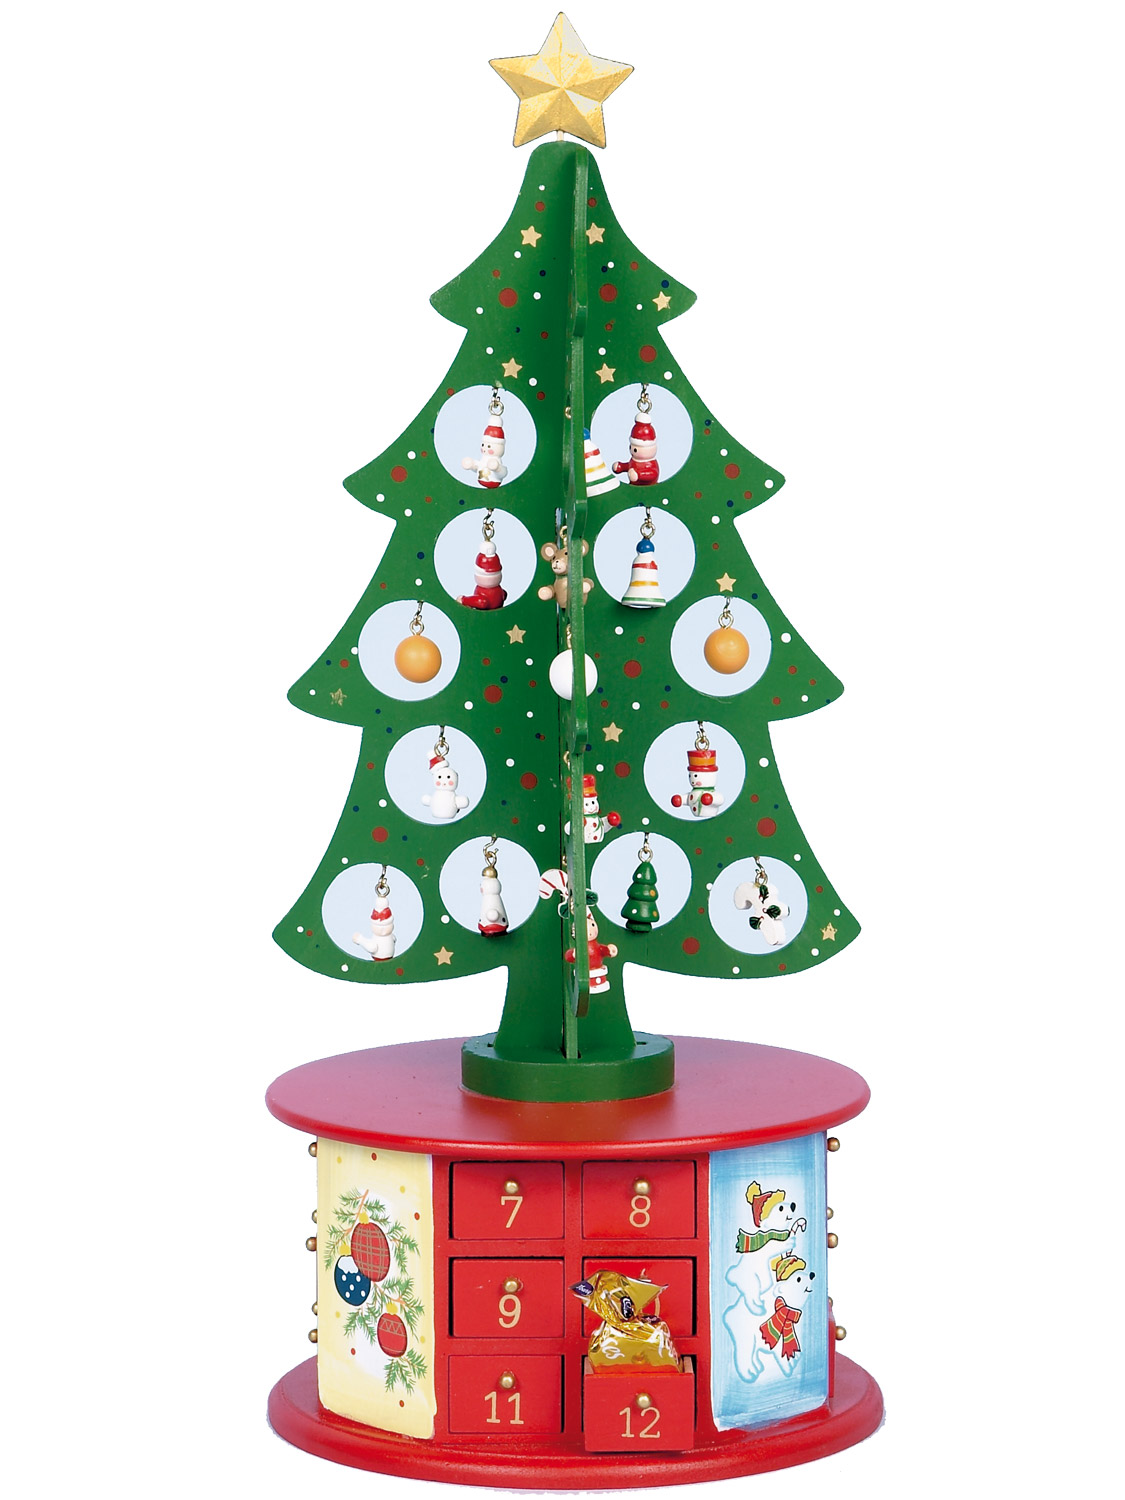 Deluxe Wooden Advent House Calendar Christmas Decoration. How To Decorate A Christmas Tree Quickly. Dollar Store Christmas Tree Decorations. Christmas Outdoor Decorations Pictures. Pictures Of Christmas Tree With Decorations. Christmas Decorations Construction Paper. Weird Christmas Tree Decorations. Christmas Decorations Gold And Cream. Santa Clarita Best Christmas Decorations